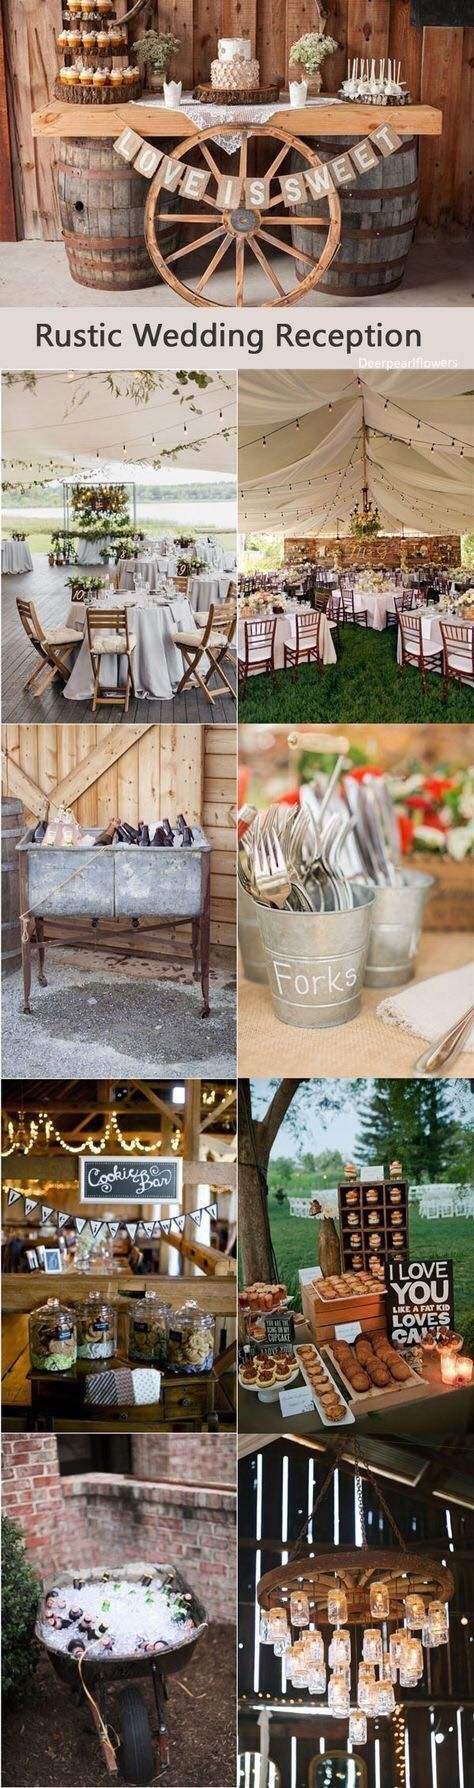 Pin by Abigail Conner on Wedding | Pinterest | Wedding, Weddings ...